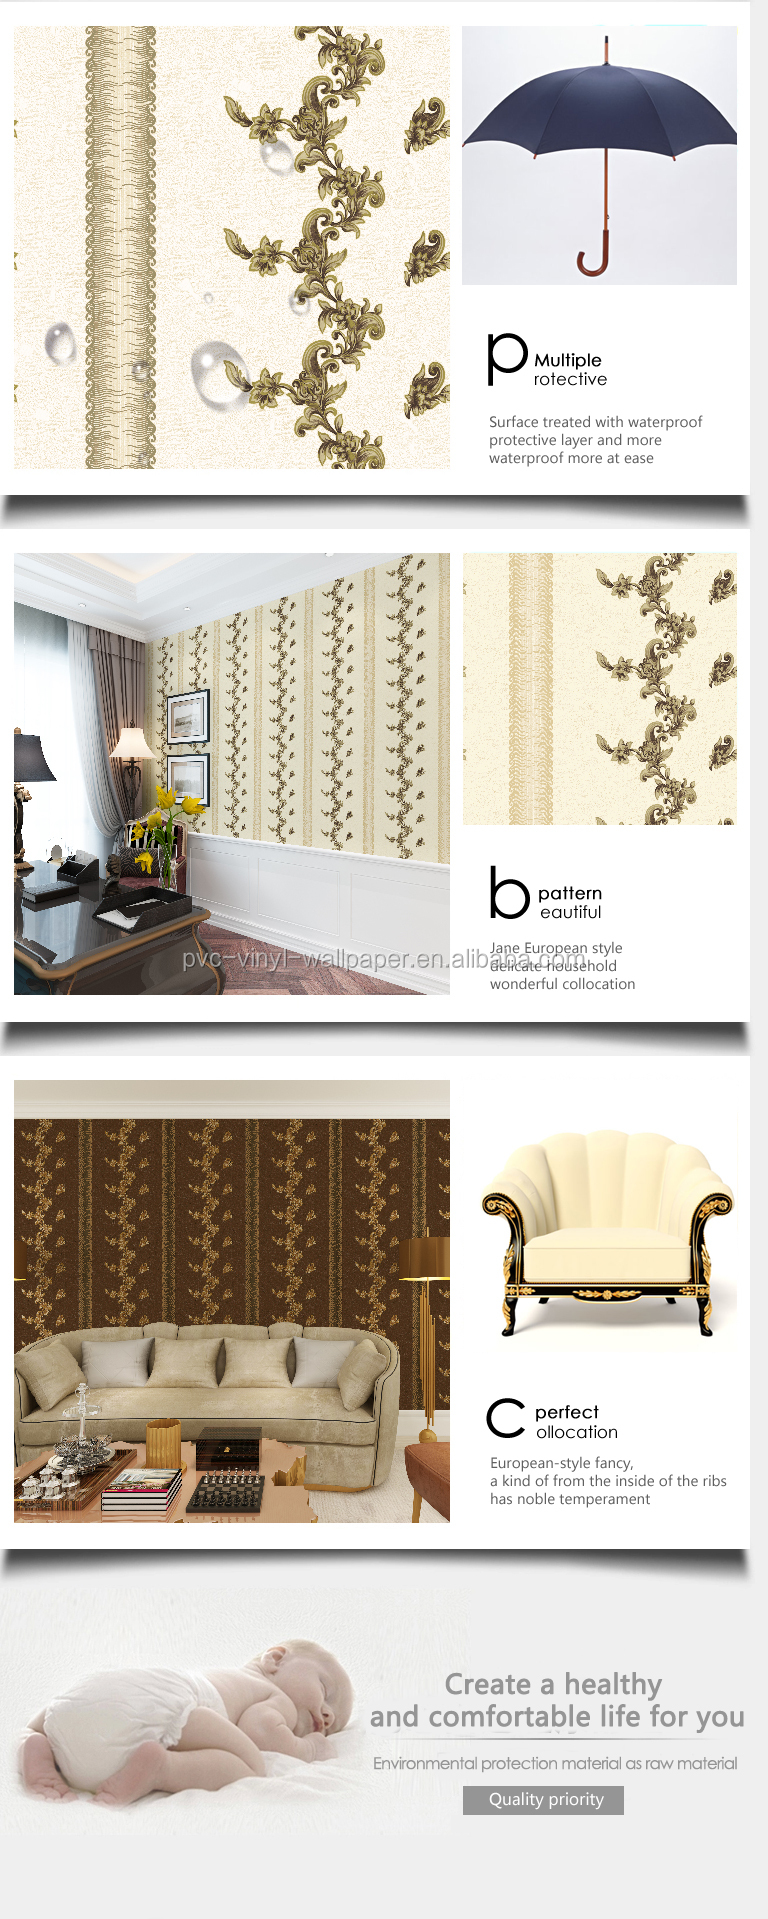 Italian wallpaper waterproof wall home Decor